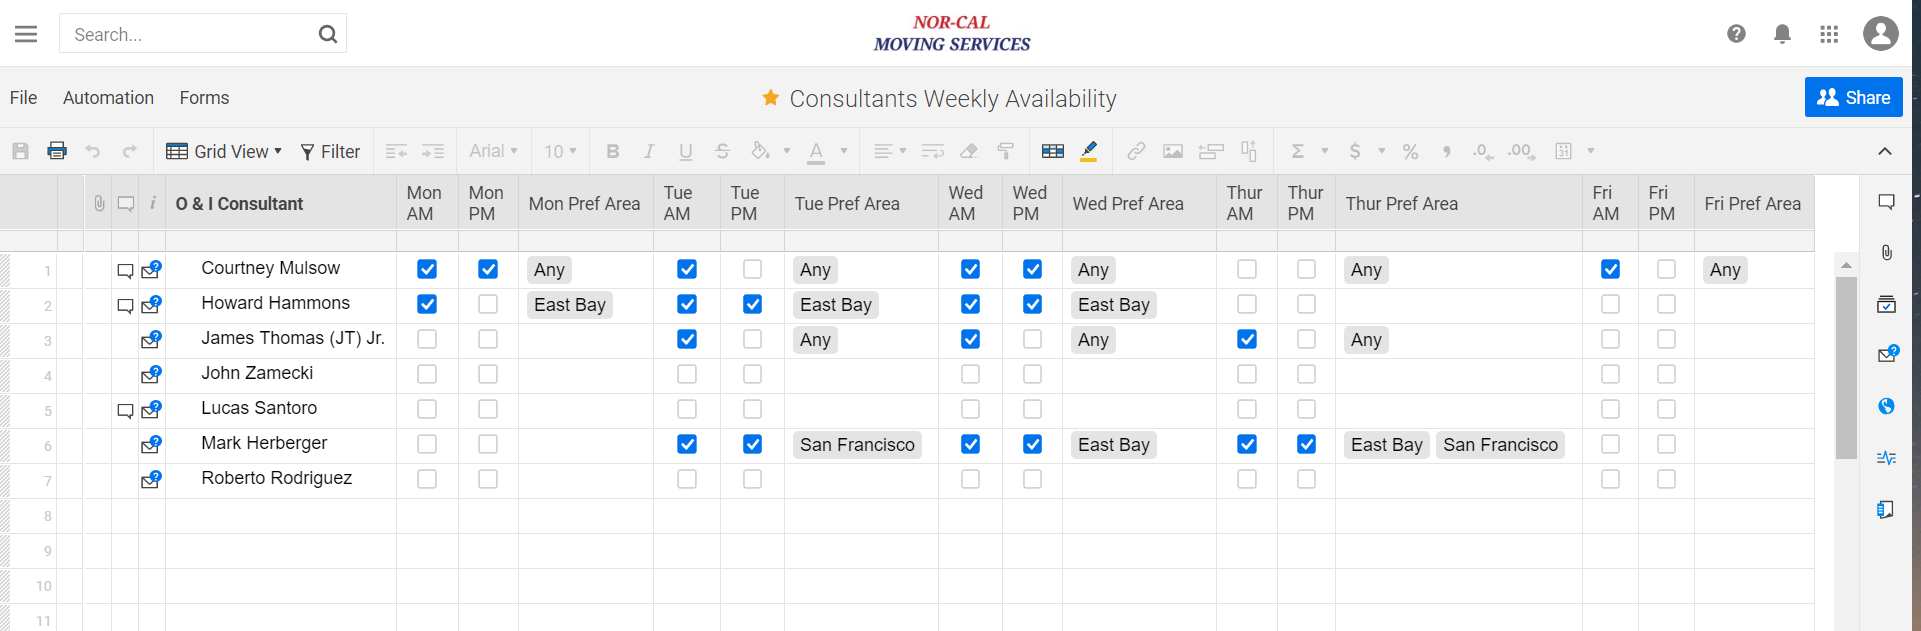 Consultants Weekly Availability Screenshot_Update Requests 1.png